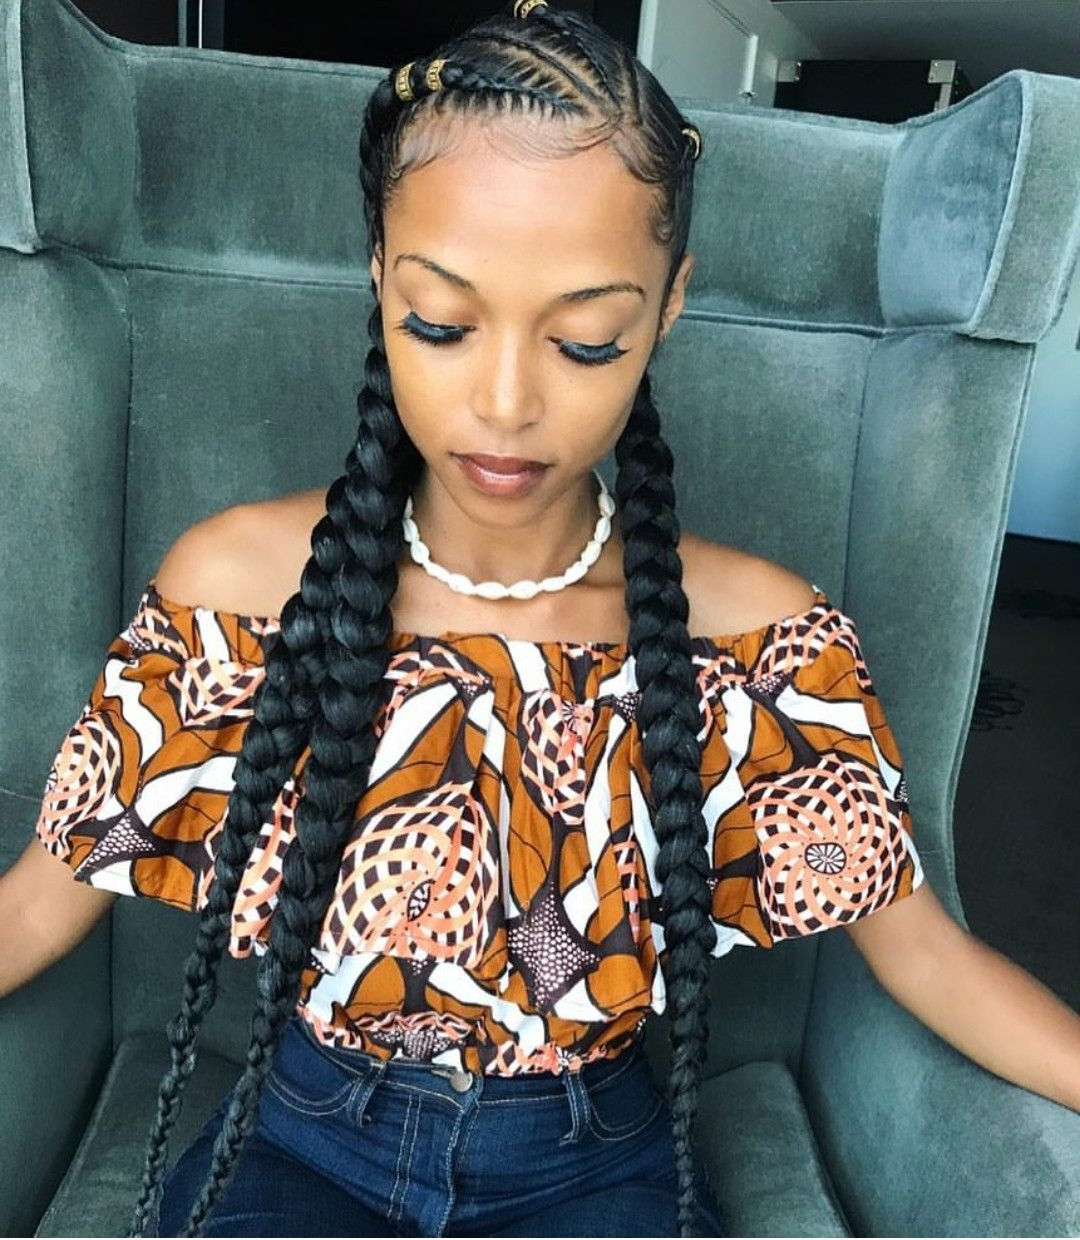 Braided Hairstyles, Two Pertaining To Most Recent Cornrow Accent Braids Hairstyles (View 4 of 20)